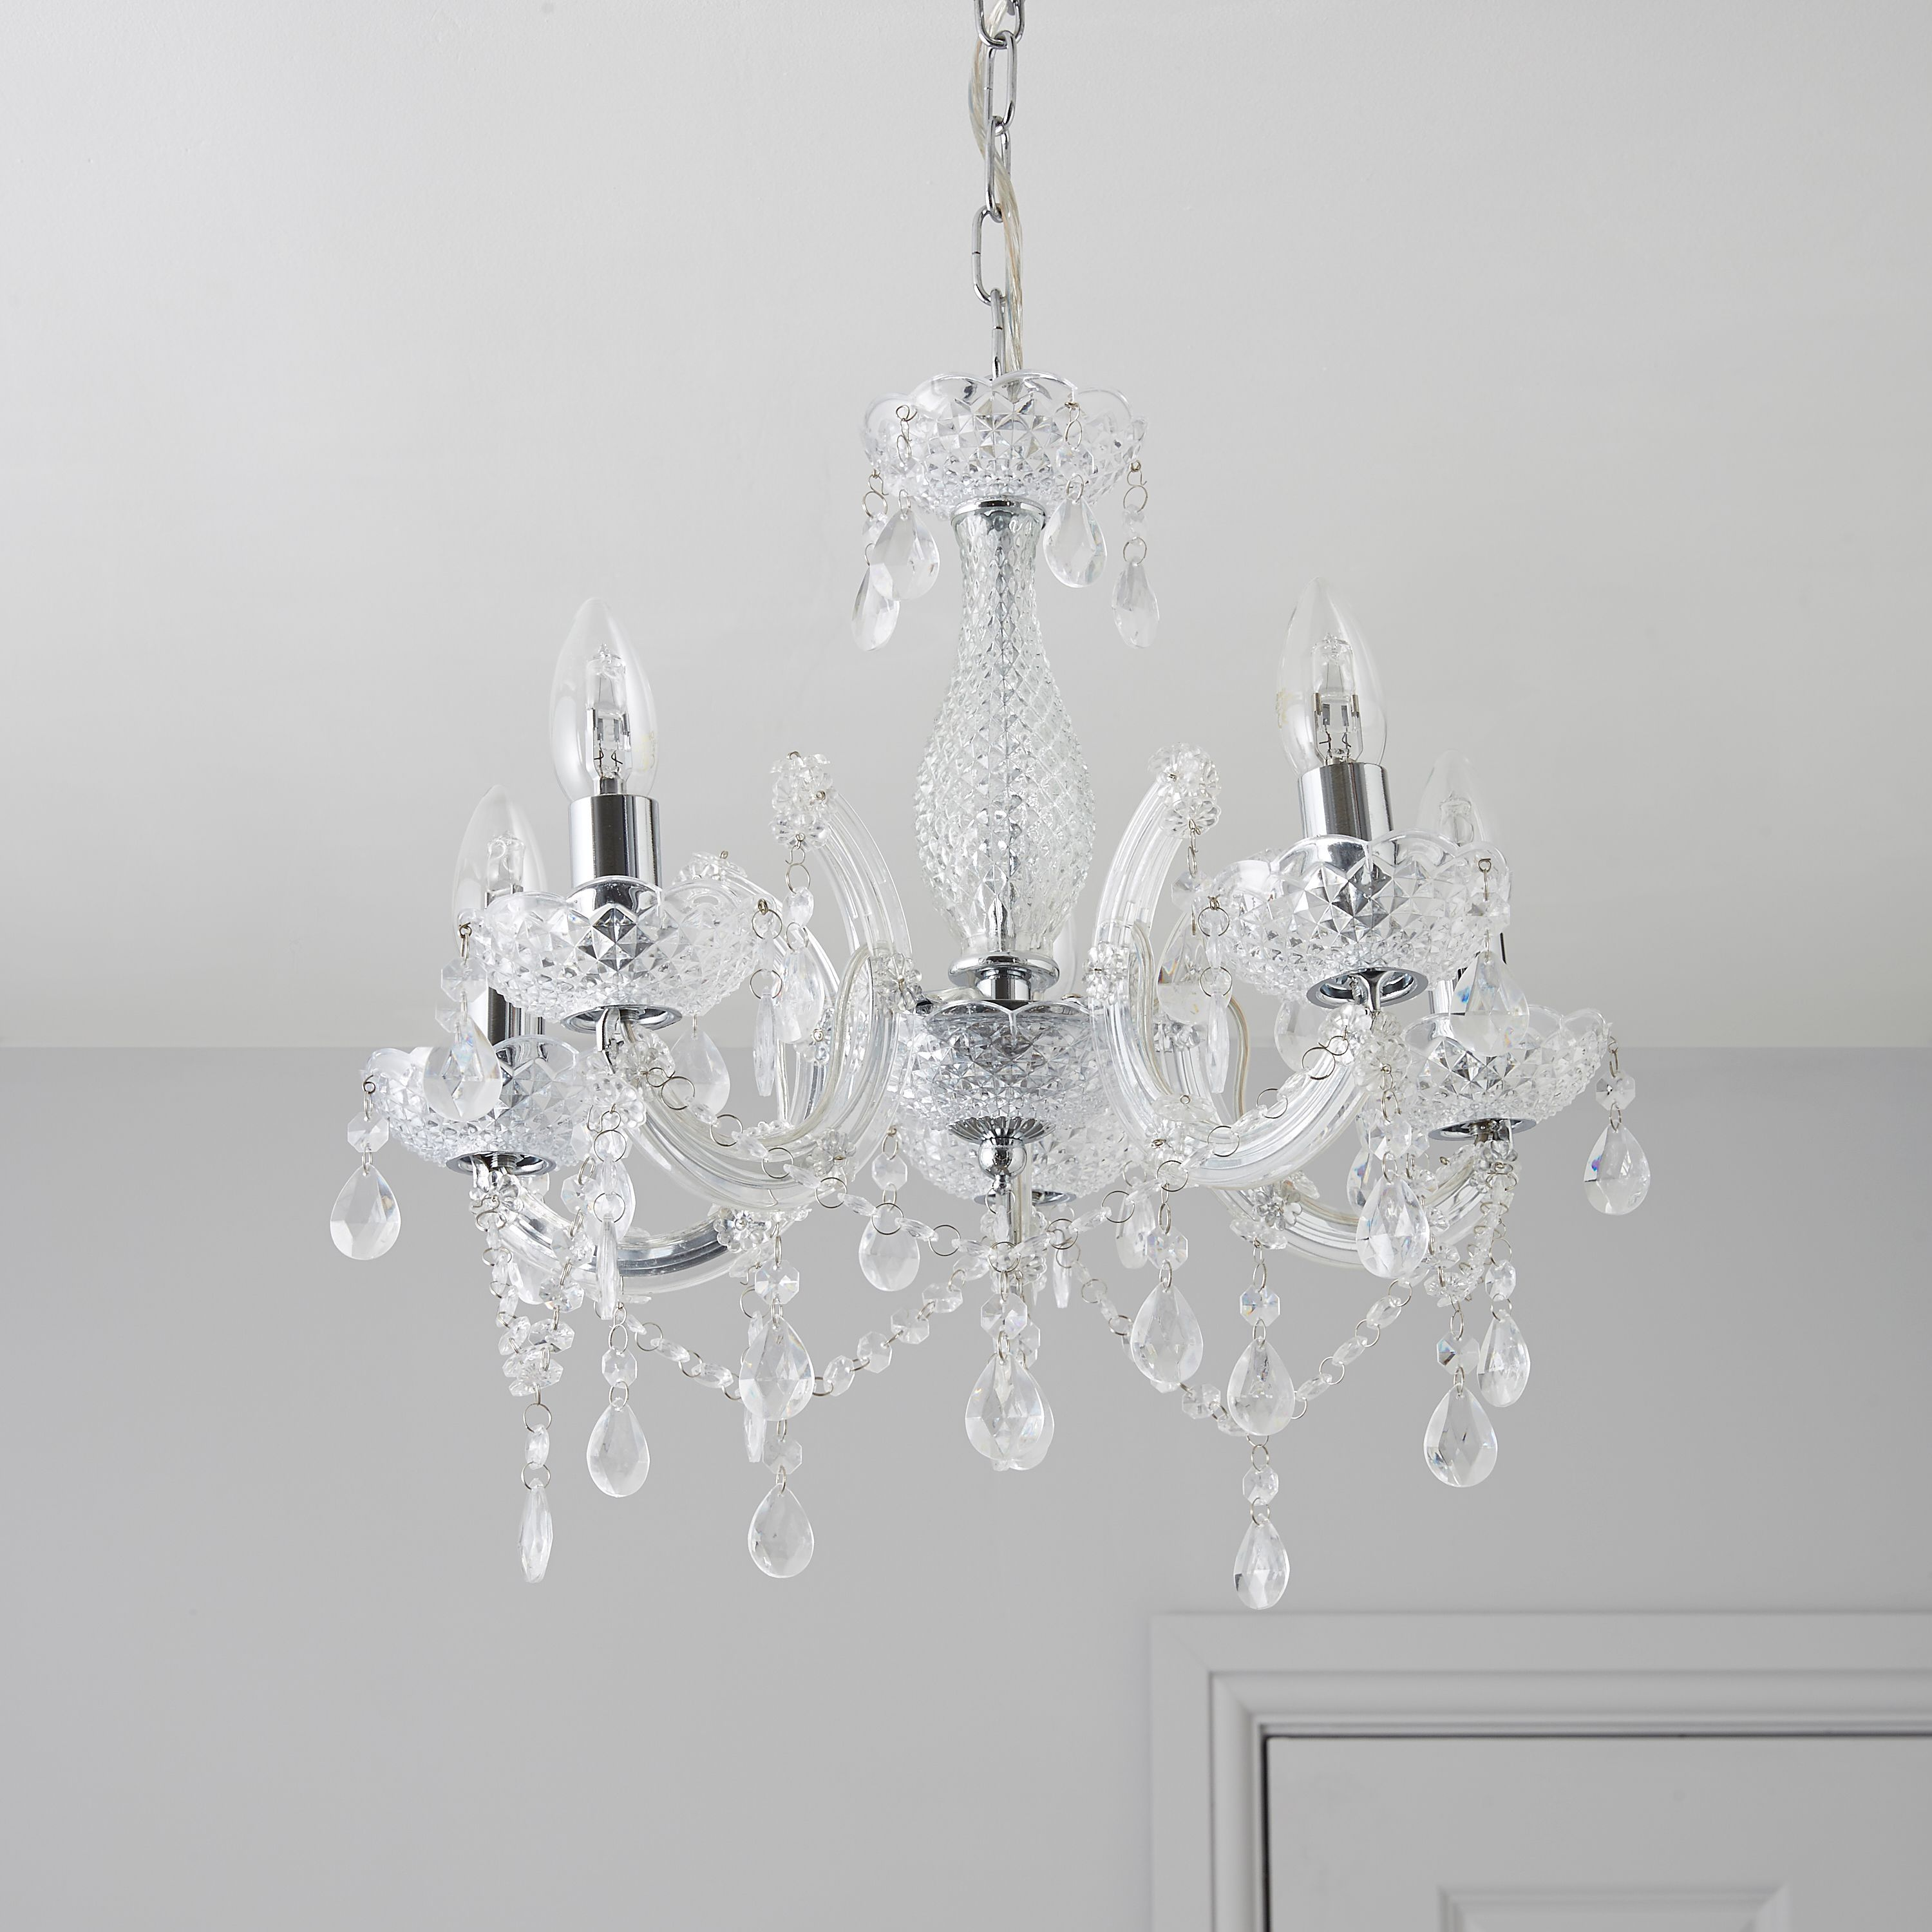 Annelise Crystal Droplets 5 Lamp Pendant Ceiling Light | Departments | DIY  at B&Q